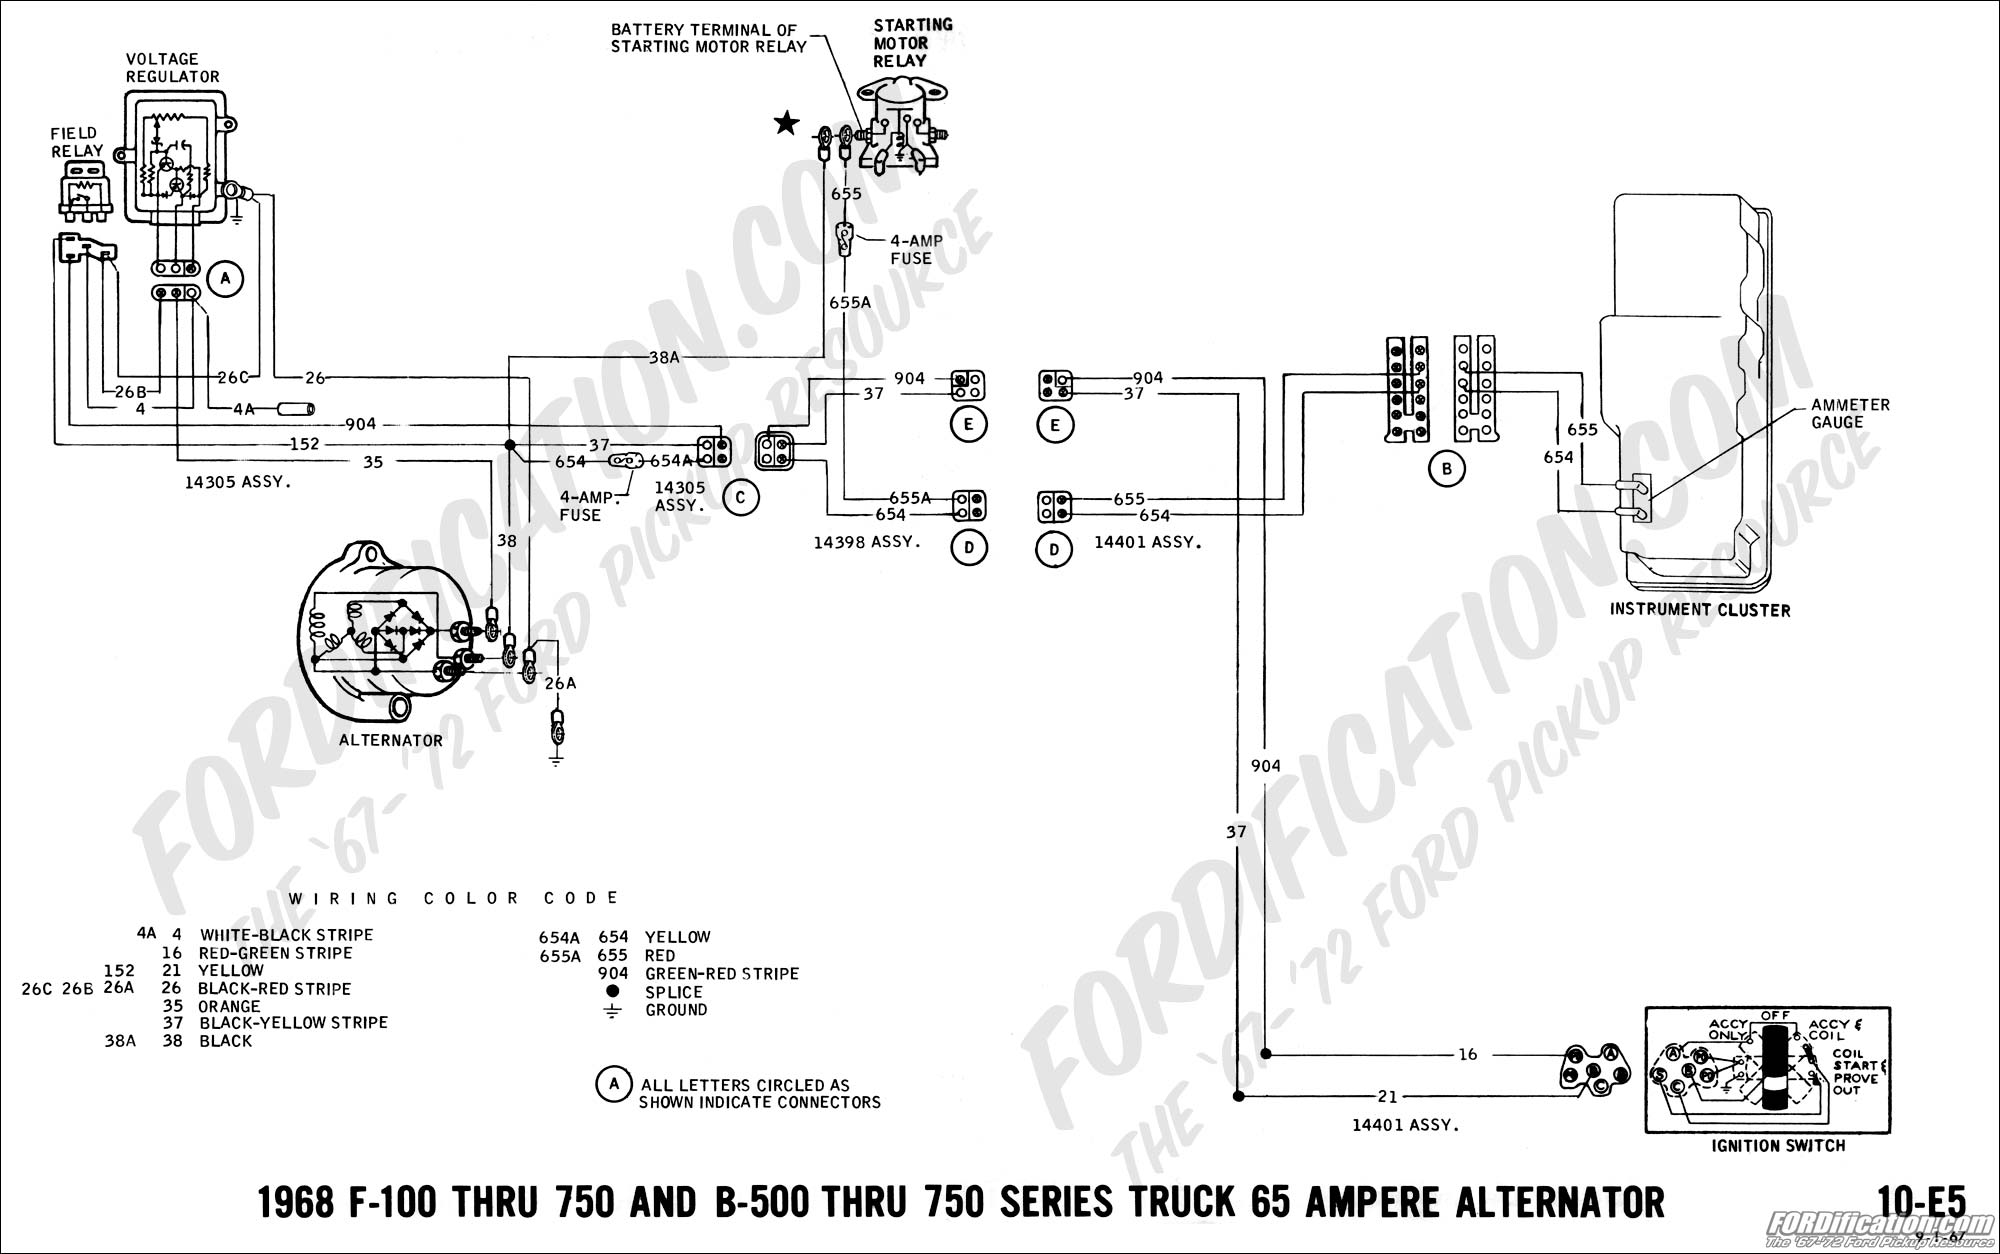 68 07 ford truck technical drawings and schematics section h wiring 1971 ford f100 wiring diagram at webbmarketing.co